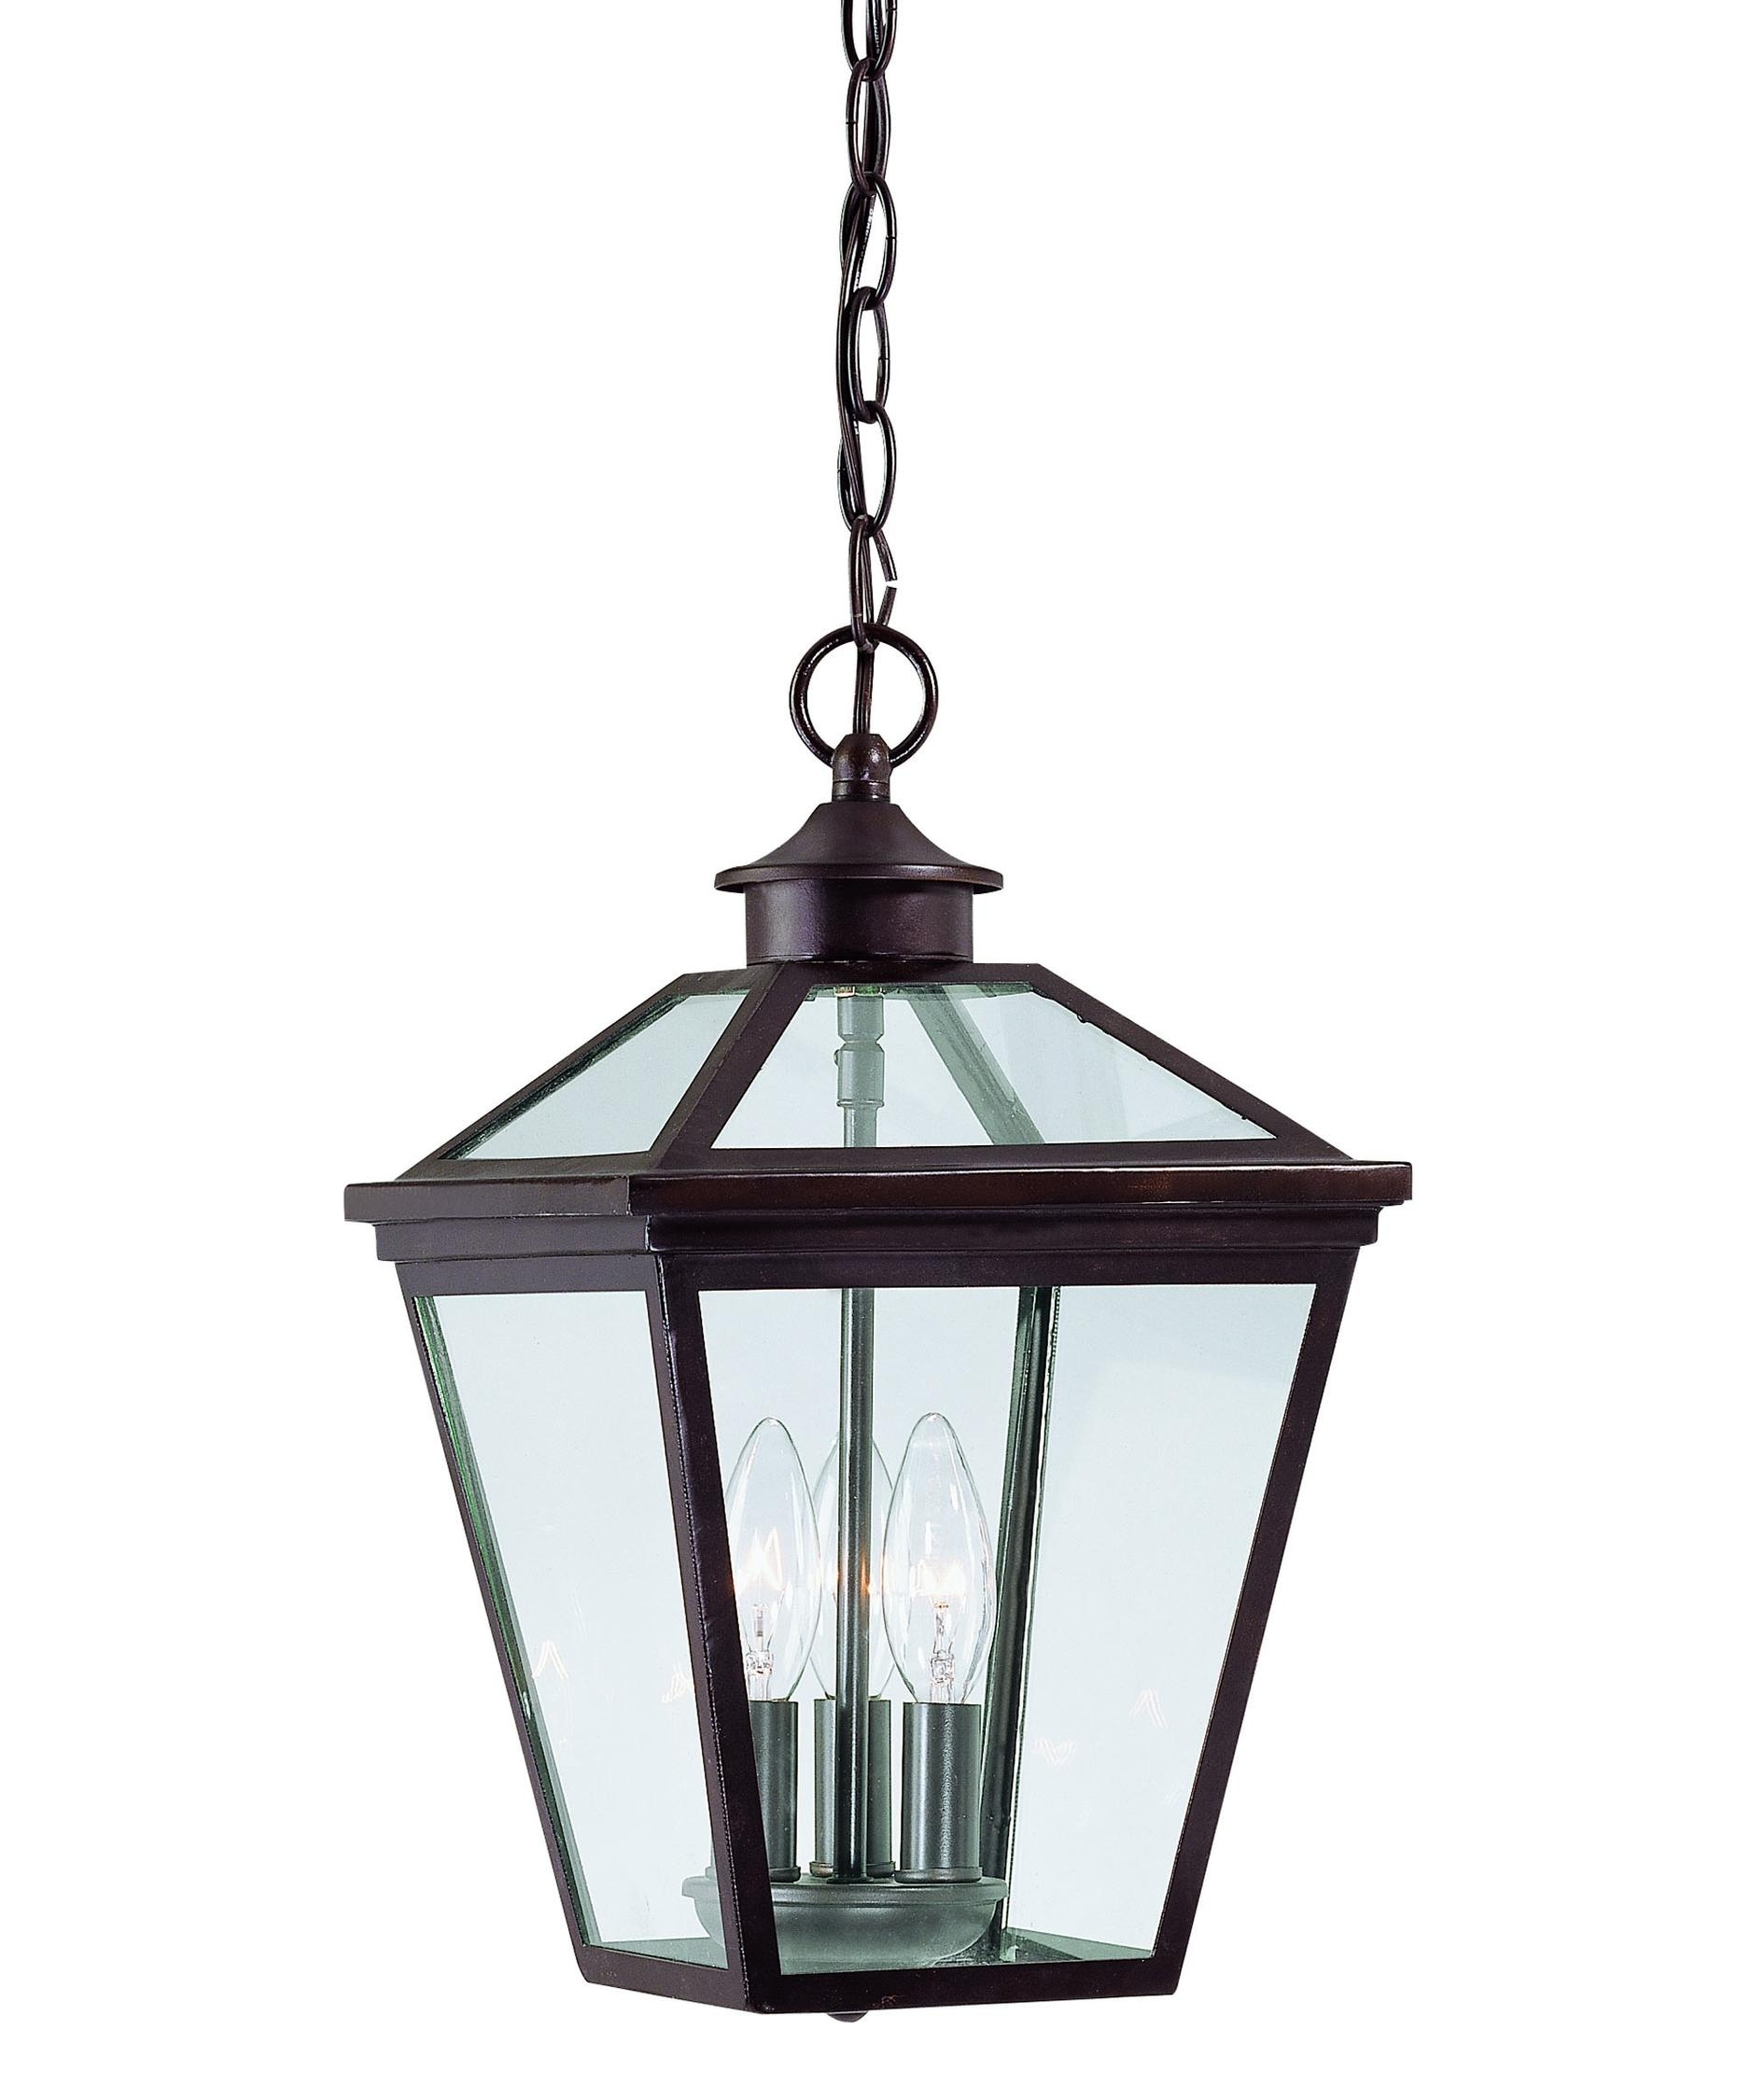 Savoy House 5 146 13 Ellijay 9 Inch Wide 3 Light Outdoor Hanging Within Outdoor Hanging Lantern Lights (View 3 of 15)